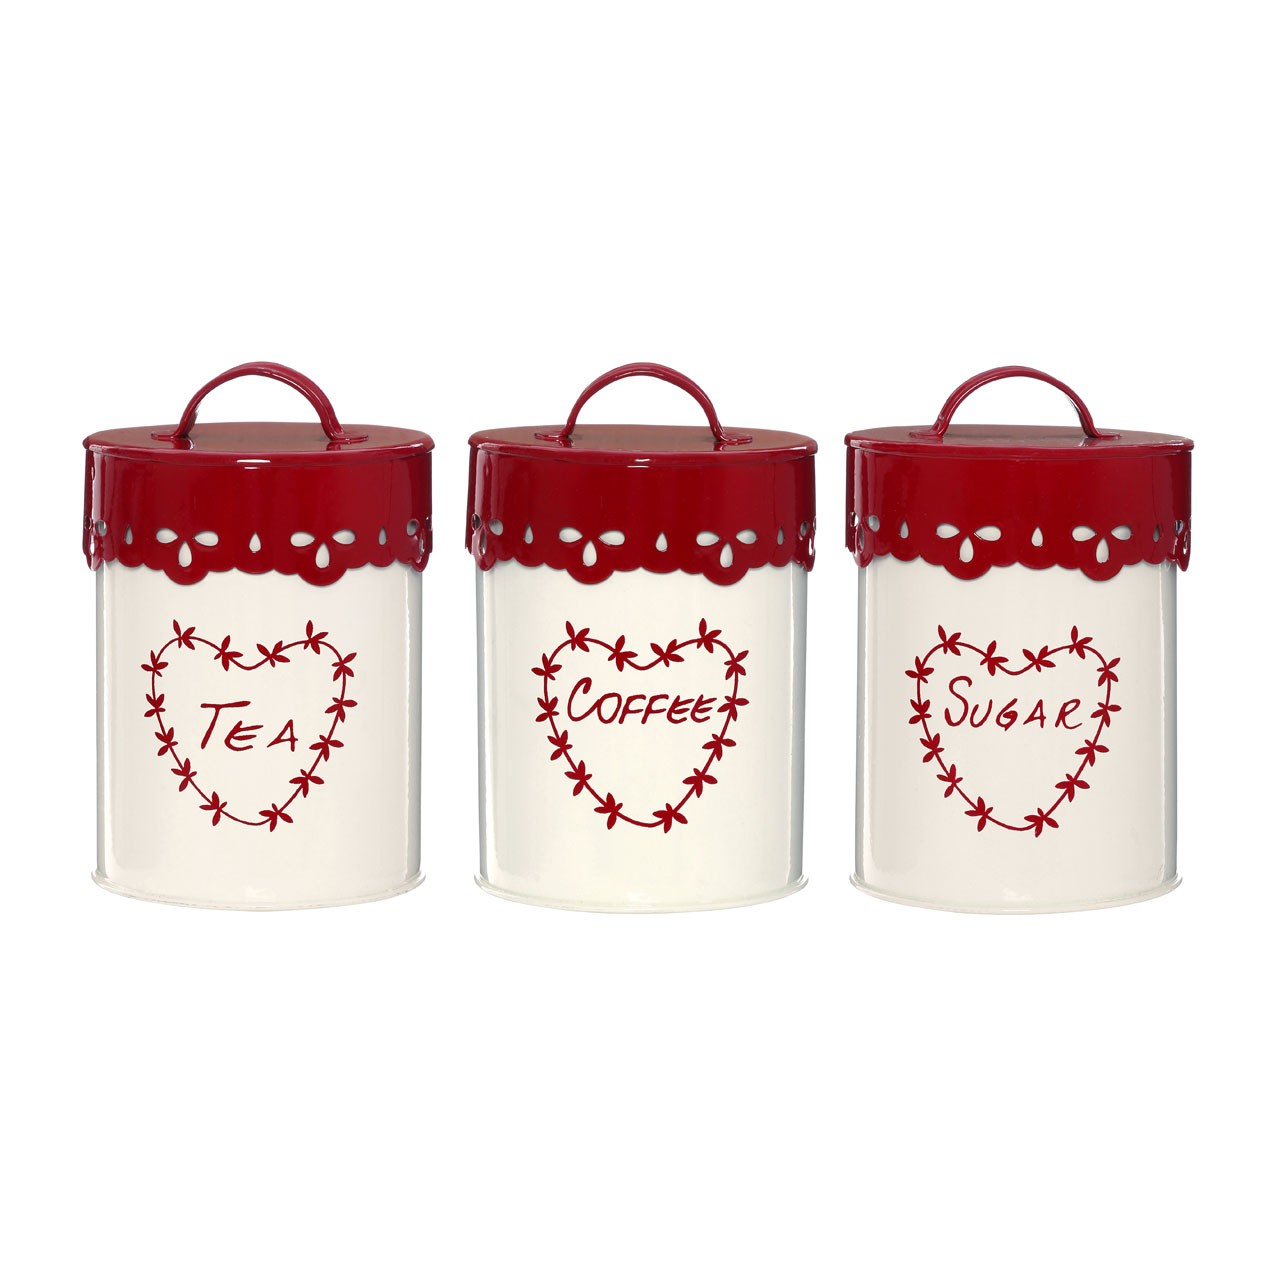 Anglaise Tea/Coffee and Sugar Canisters - Cream/Red, Set of 3